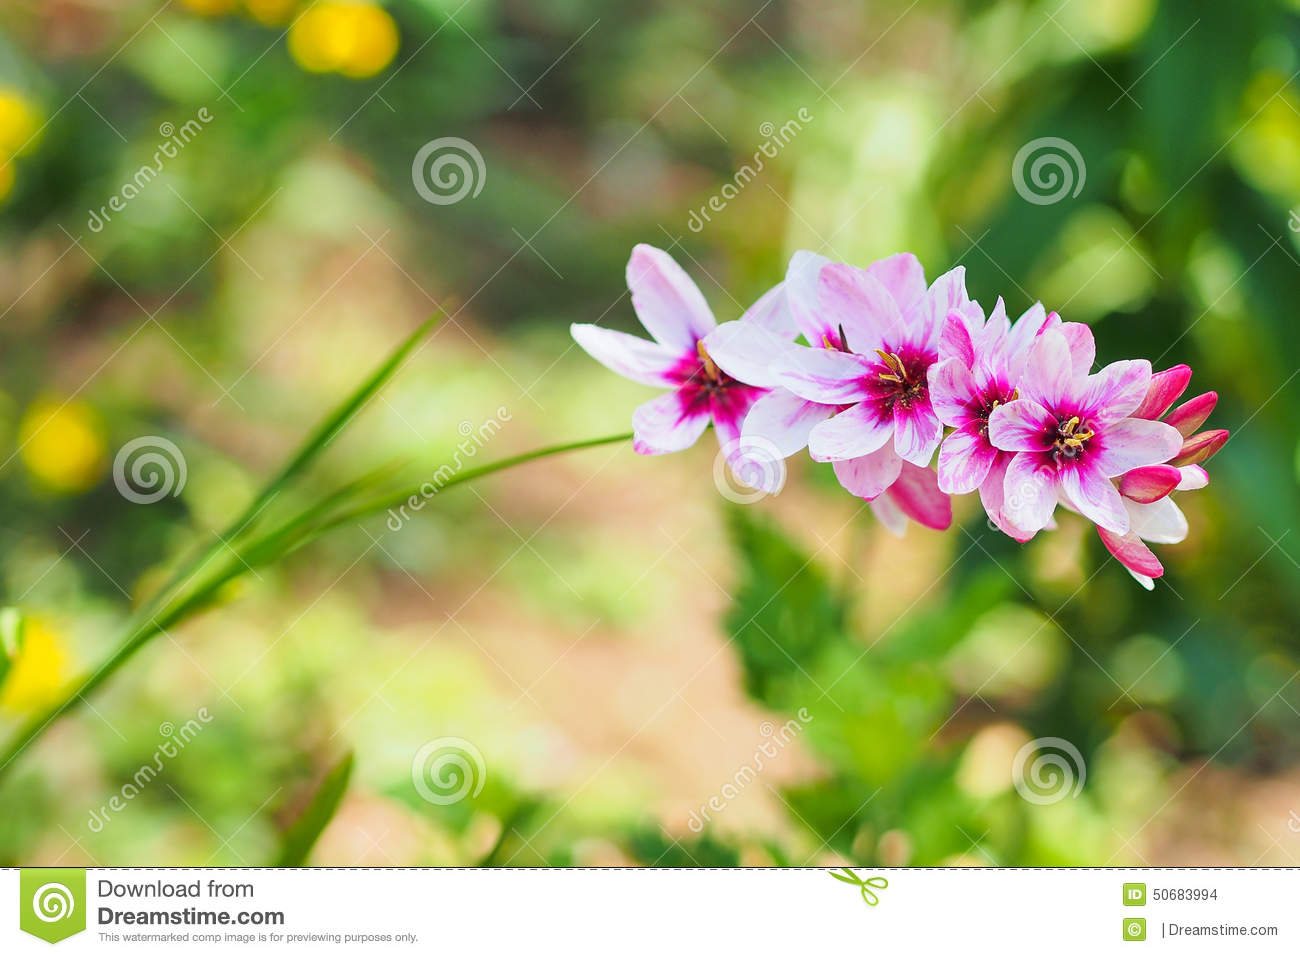 nice flower closeup in the garden during day time stock photo, Beautiful flower